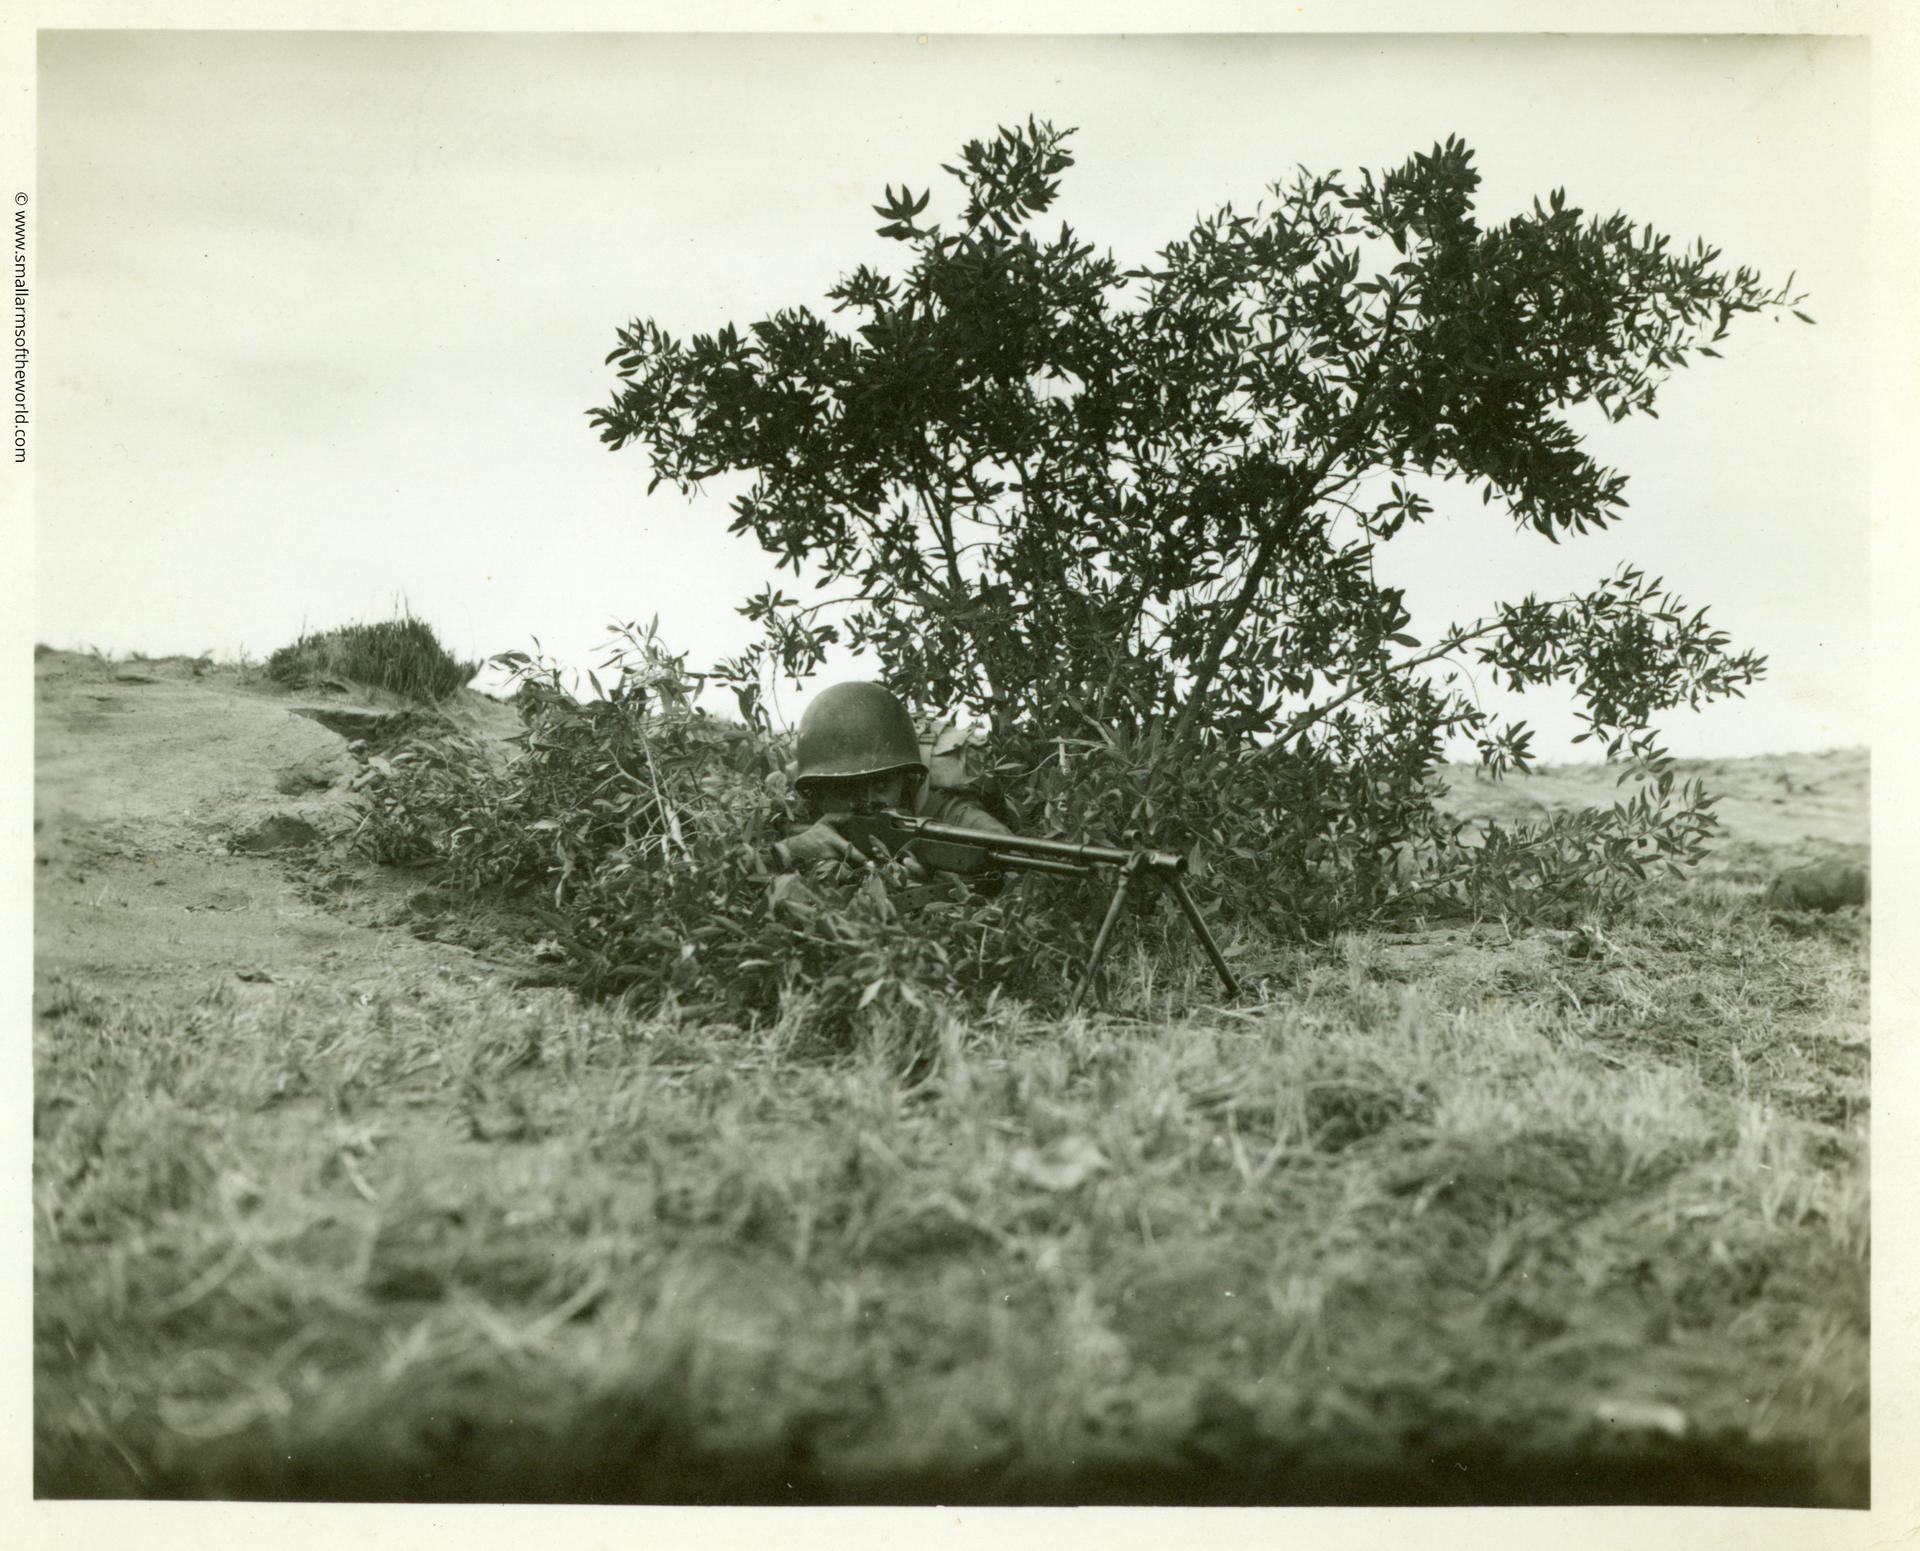 A position manned with the later M1918A2 BAR